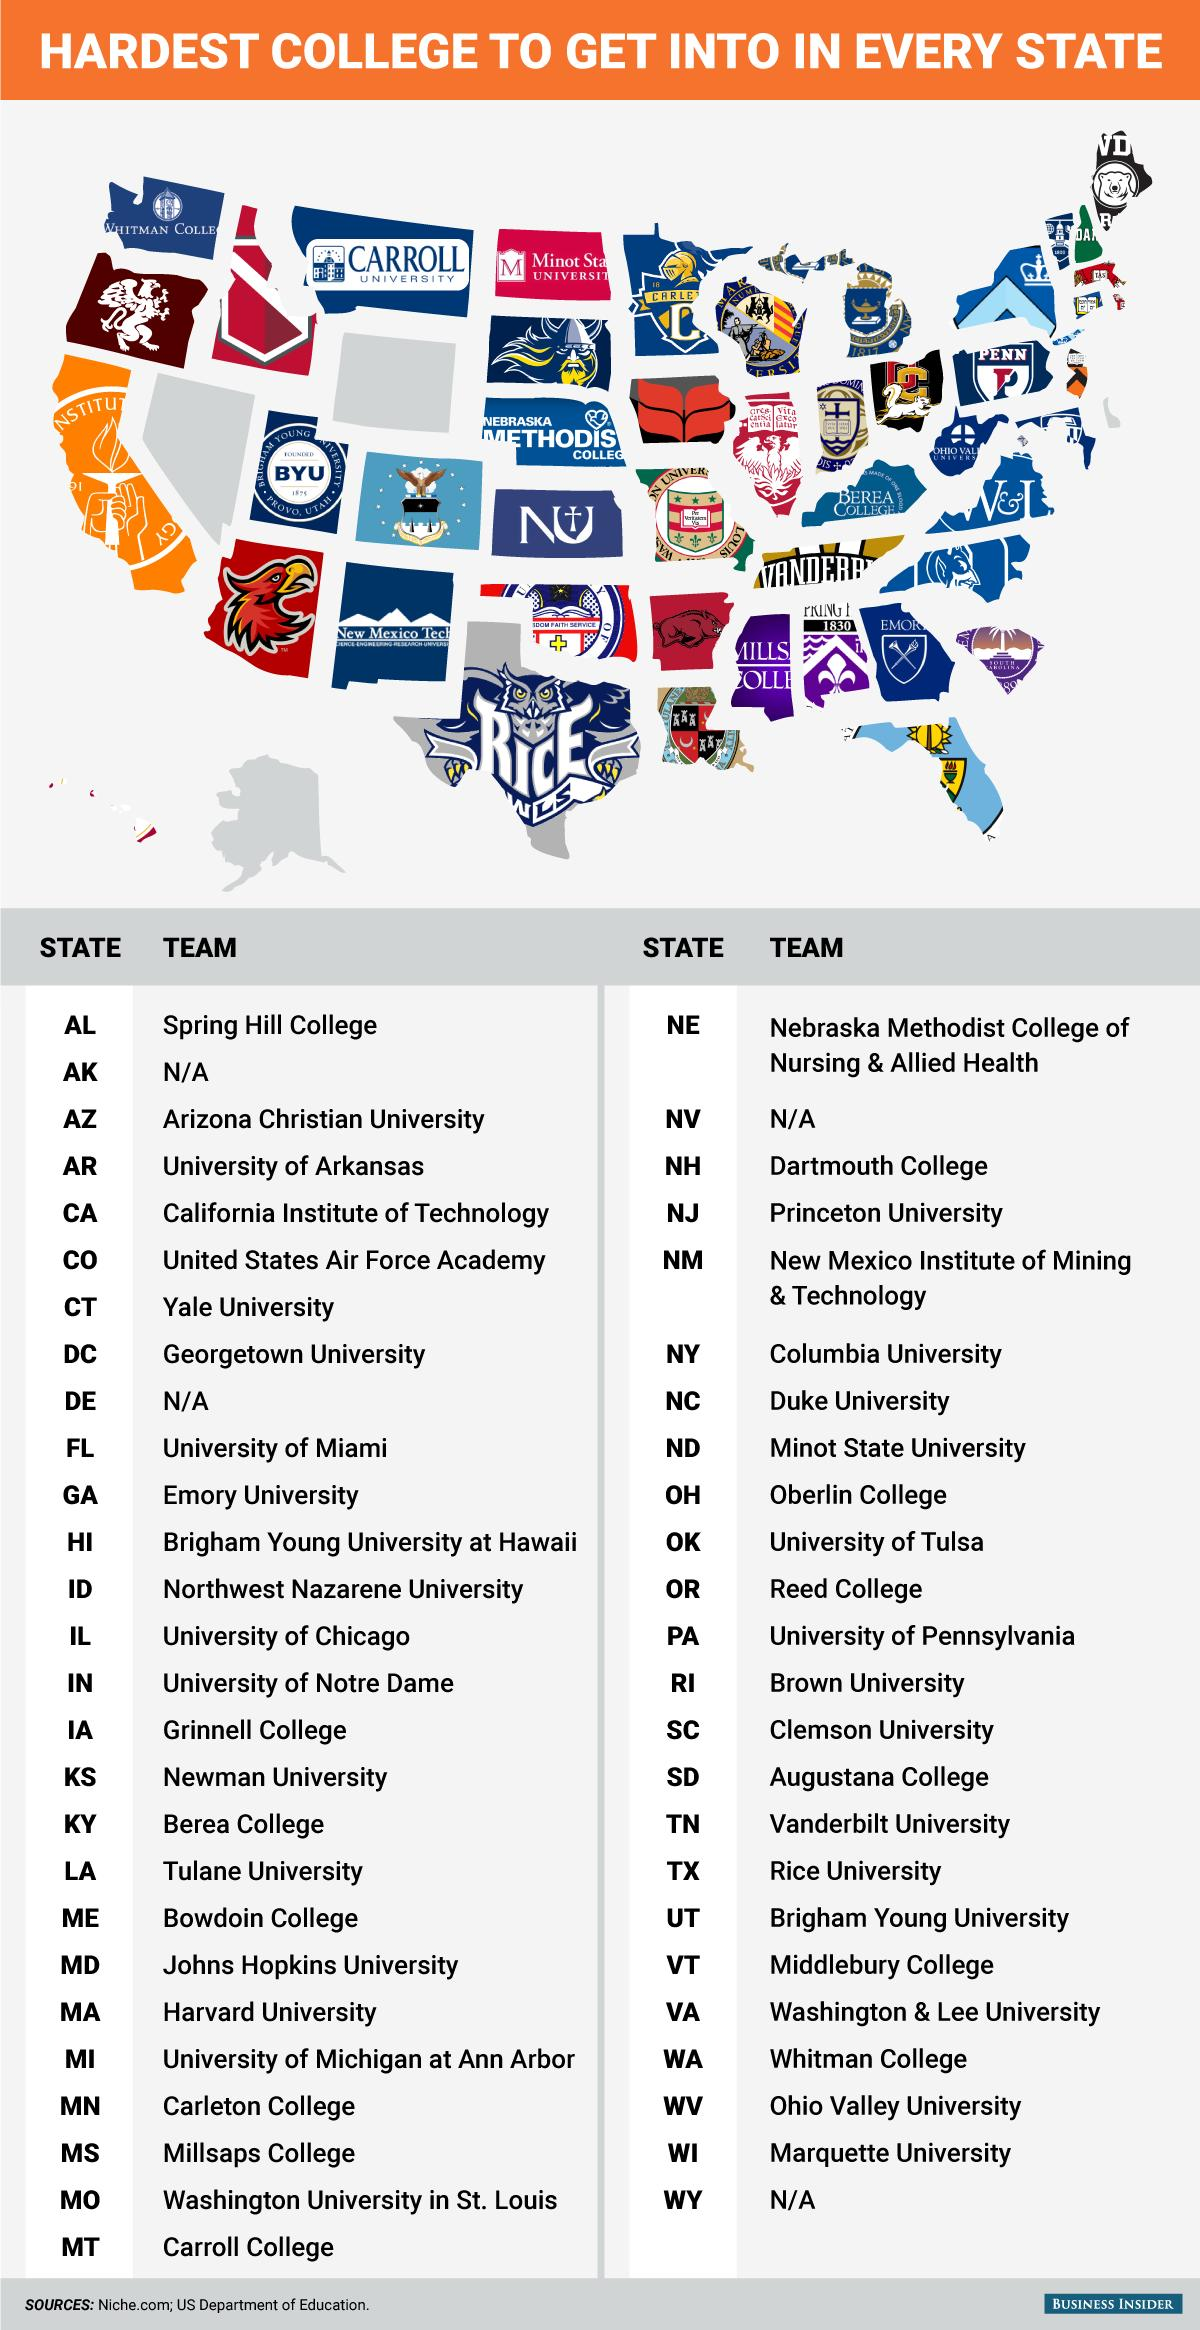 This graphic shows the hardest college to get into in every state